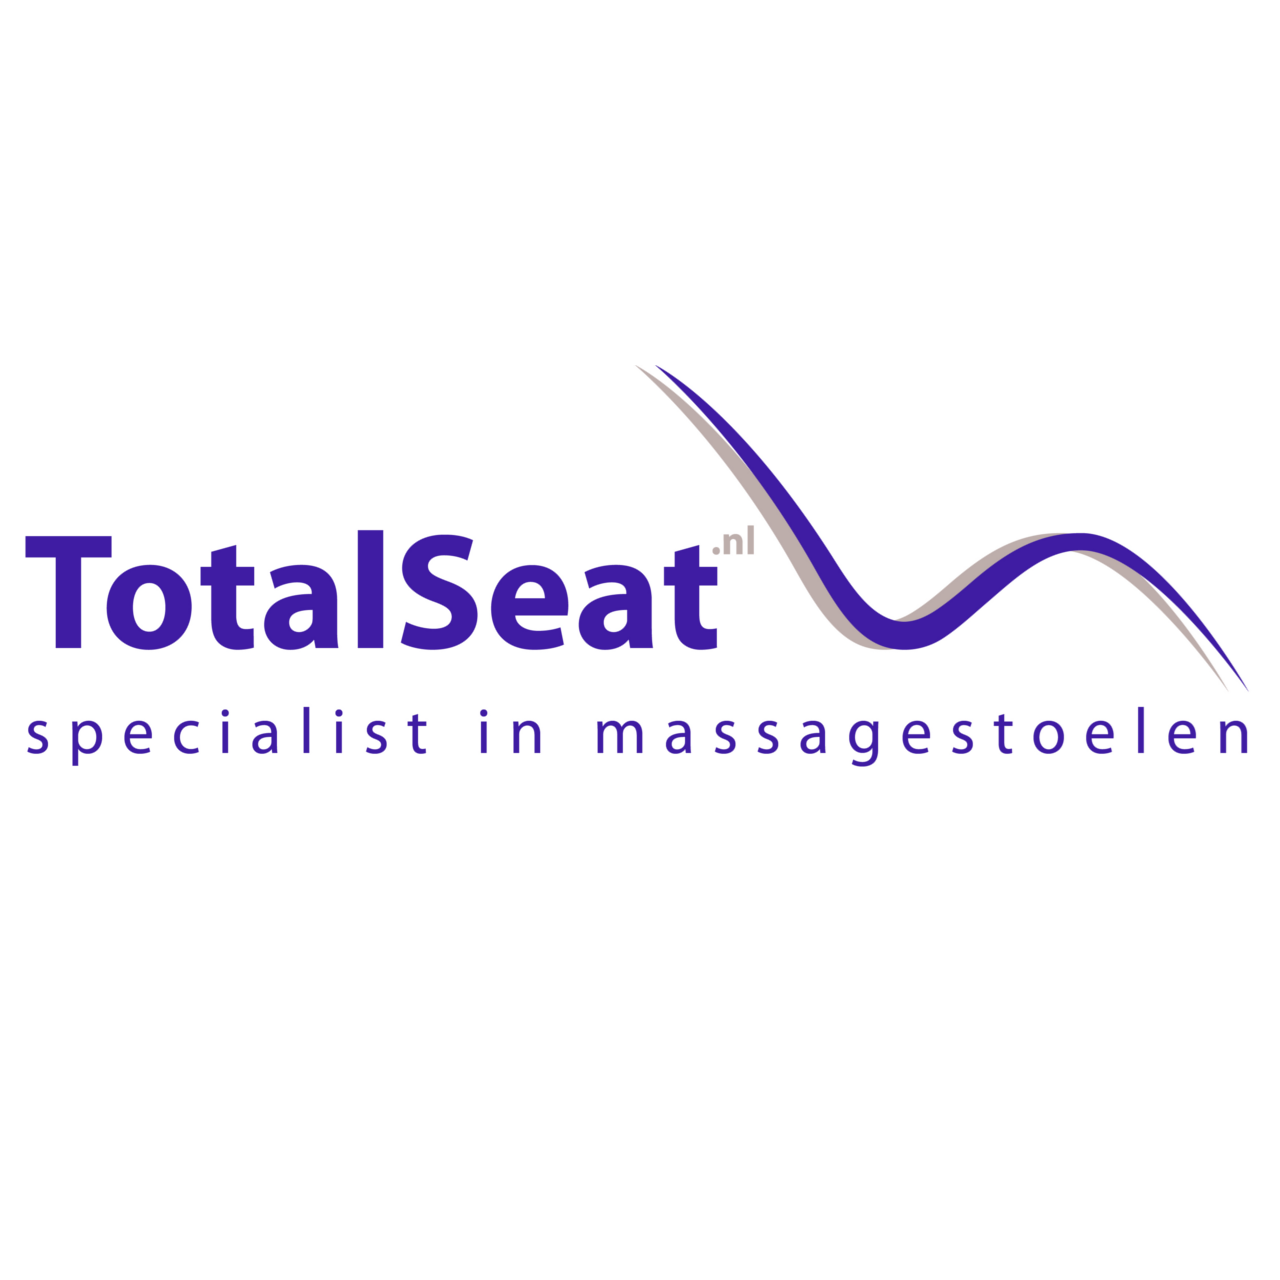 totalseat website.png